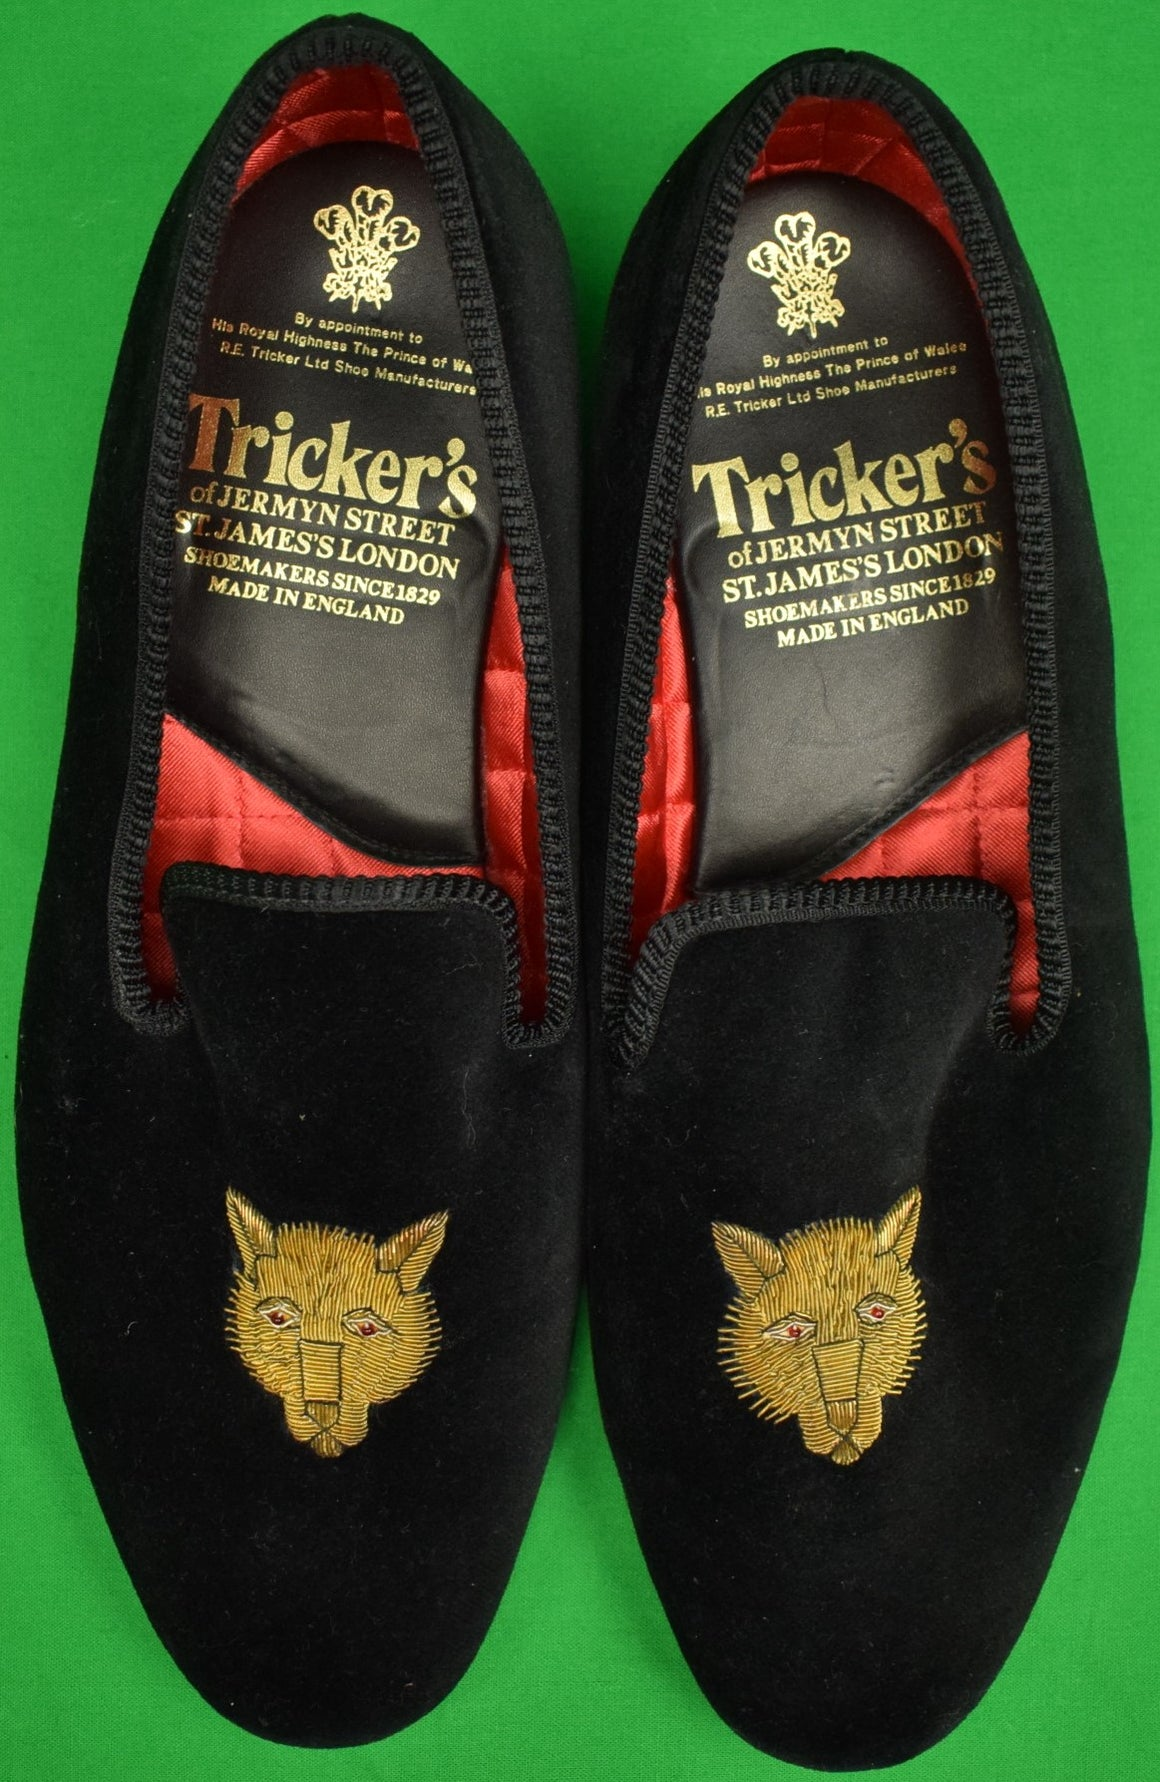 Trickers of Jermyn Street Black Velvet Fox-Mask Slippers Sz: 9.5